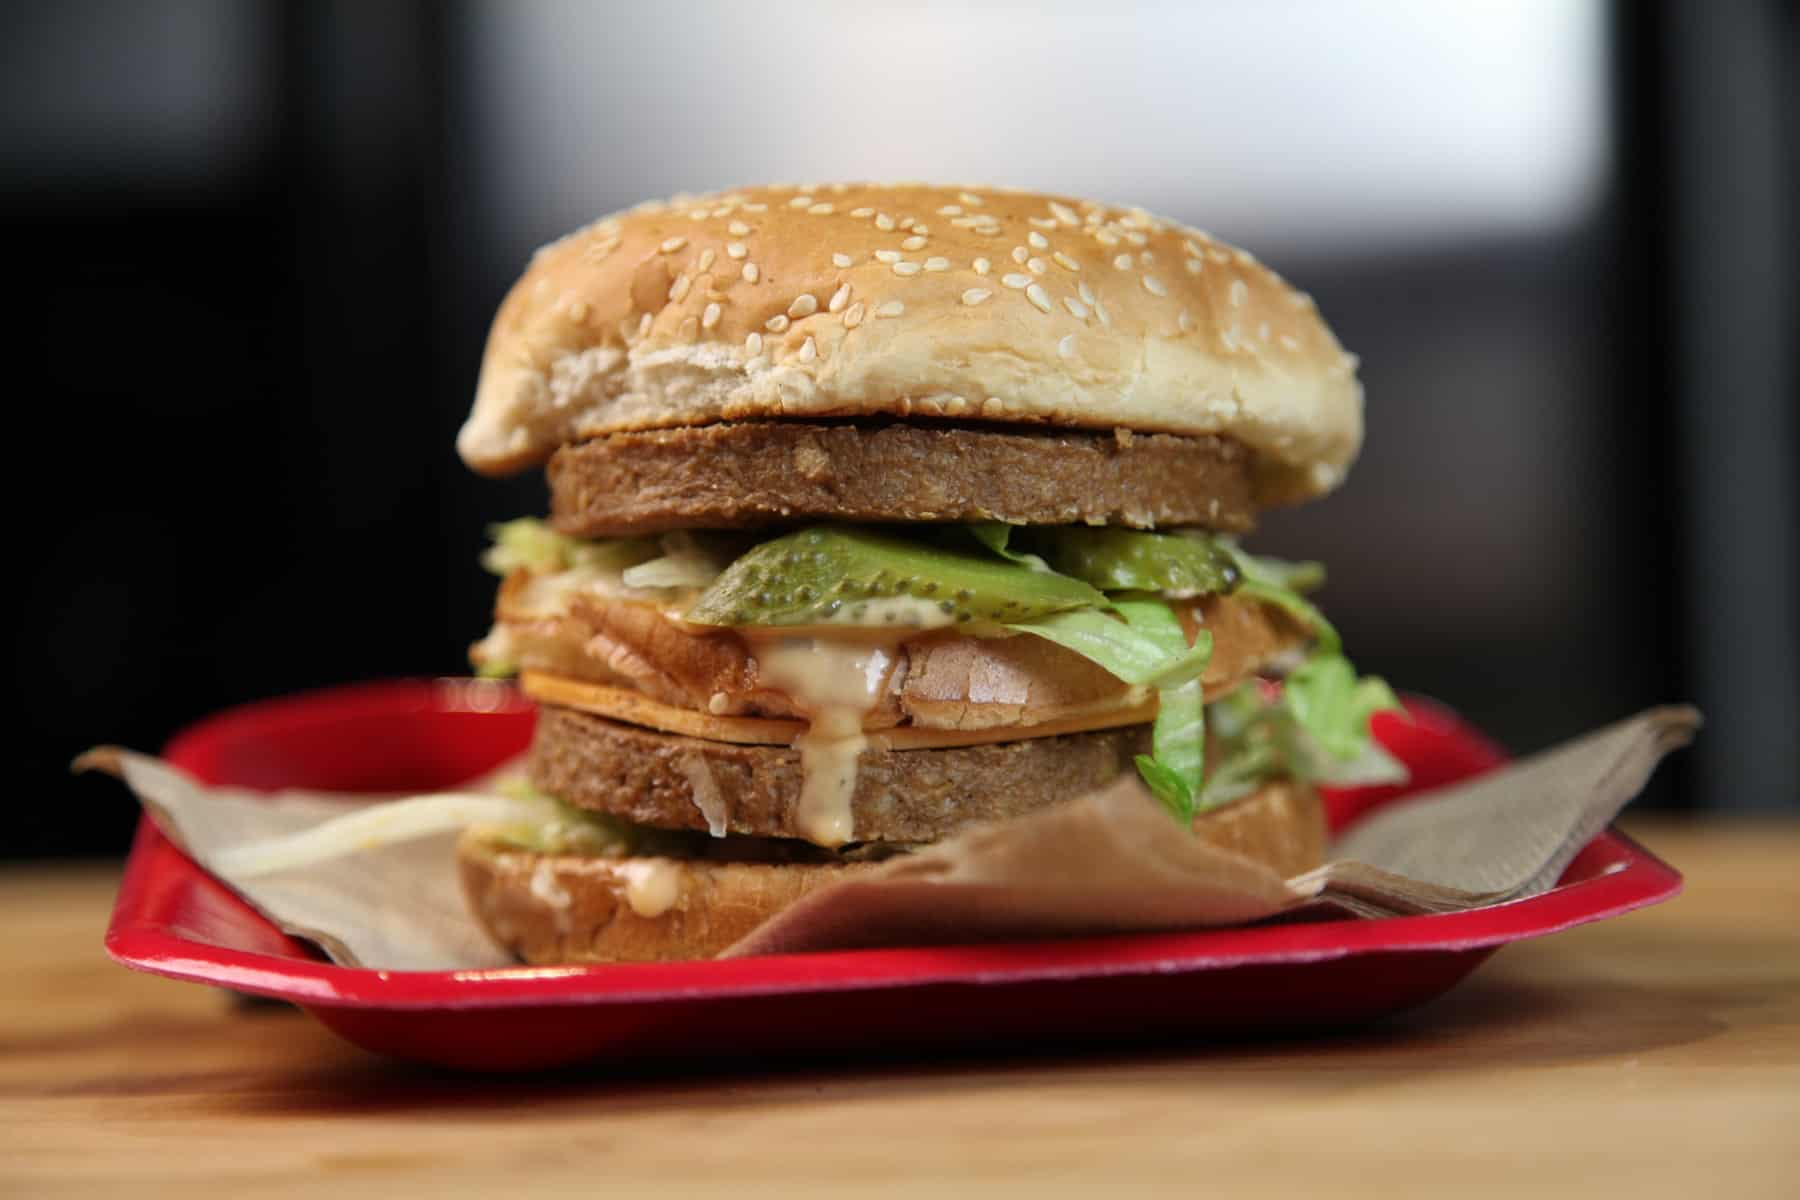 The Vegan Big Mac